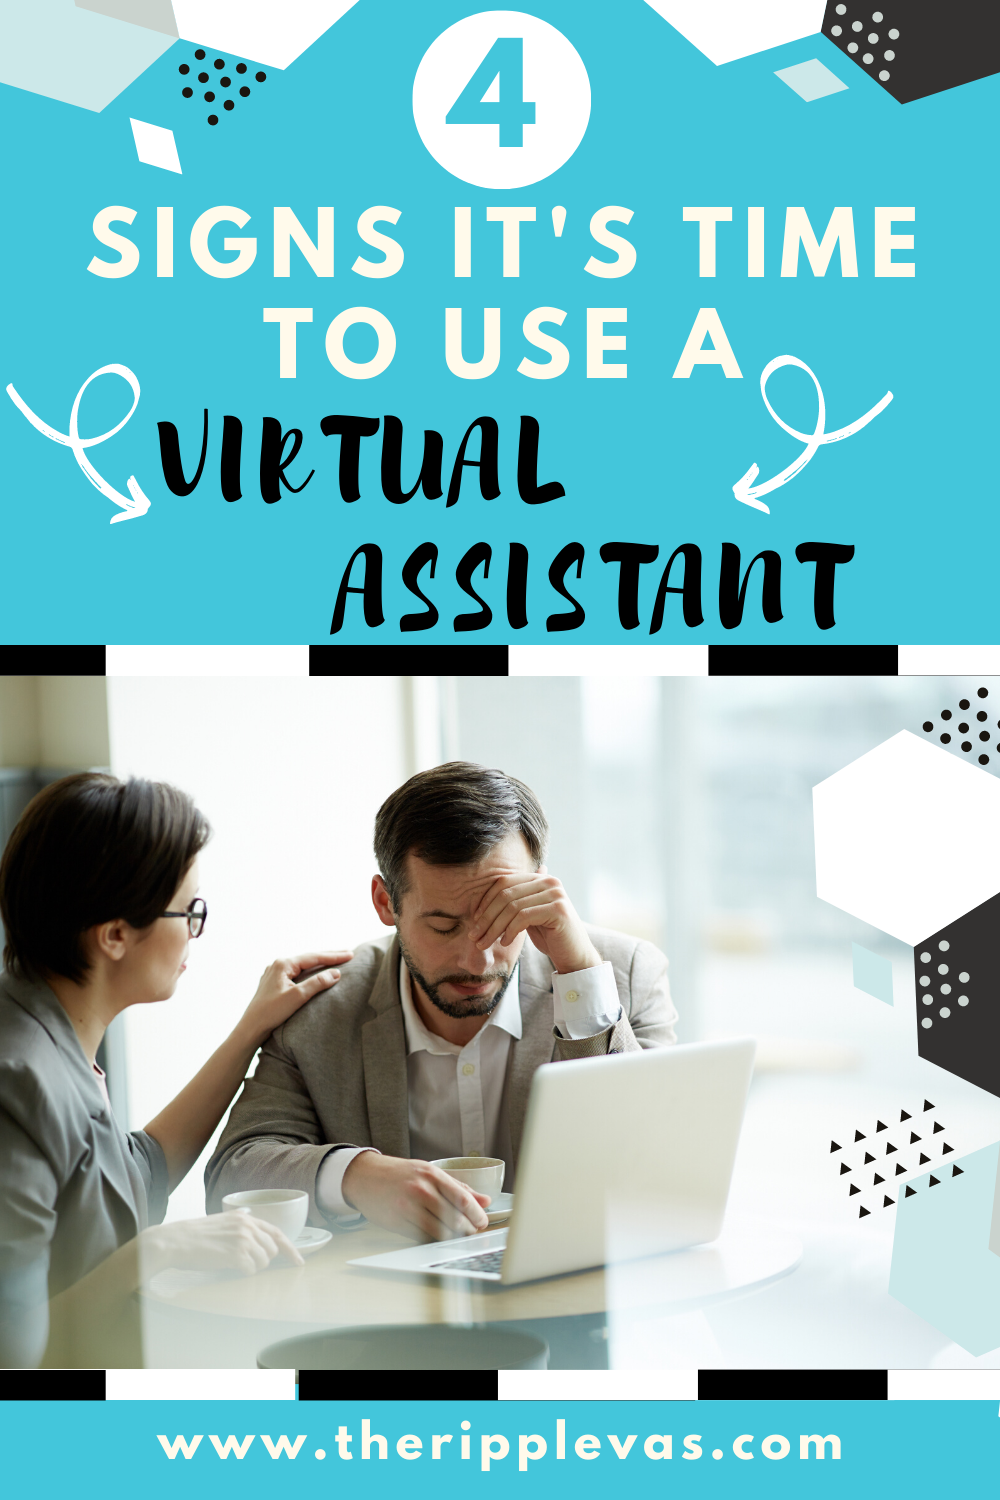 Why Hire A Virtual Assistant + Benefits of Hiring a Virtual Assistant